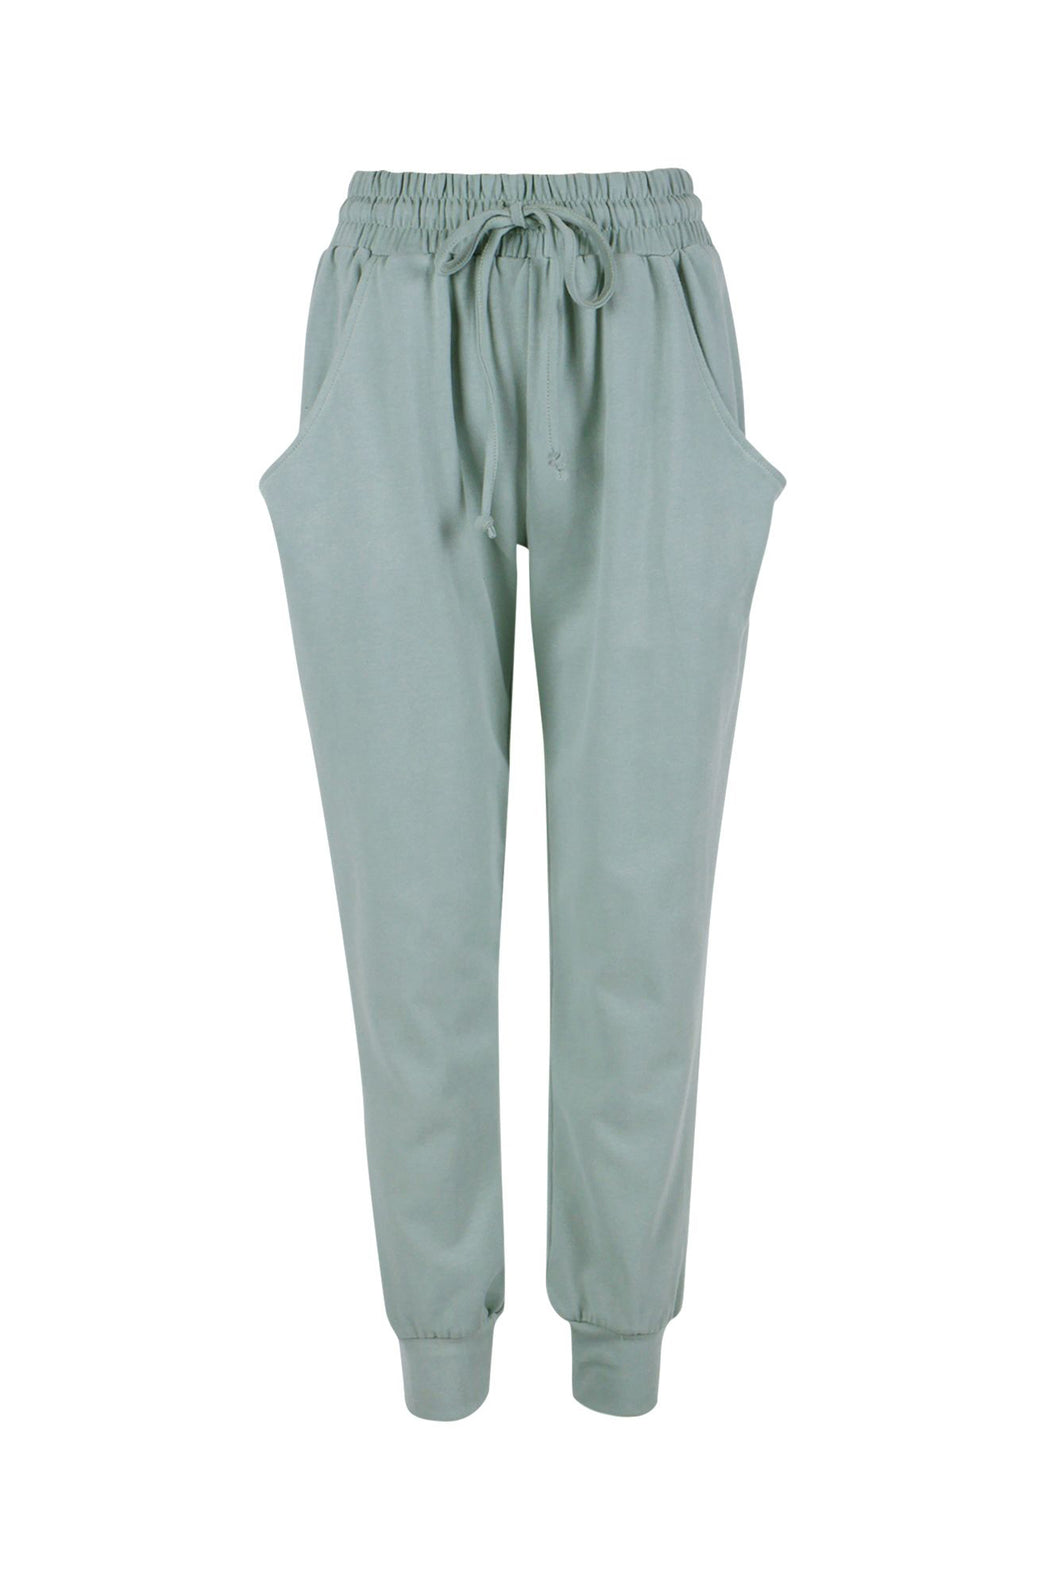 Ketz-ke Stage Pant - Sage | Shop Ketz-ke at Wallace & Gibbs NZ